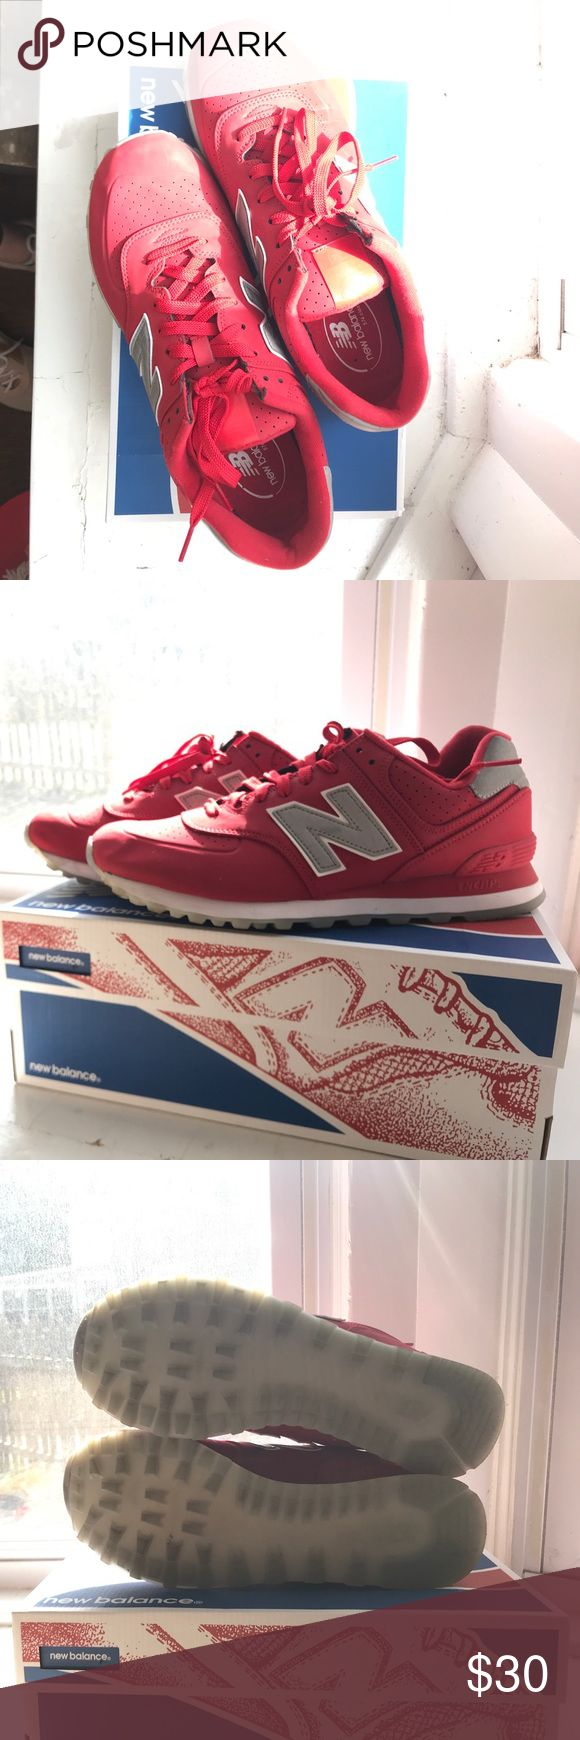 Men's New Balance 574 Barely worn - purchased for my husband but he didn't like them! Two pair for sale - this one does not come with the box and was worn 2x.  Other pair never worn w/ box check it out in my closet New Balance Shoes Sneakers